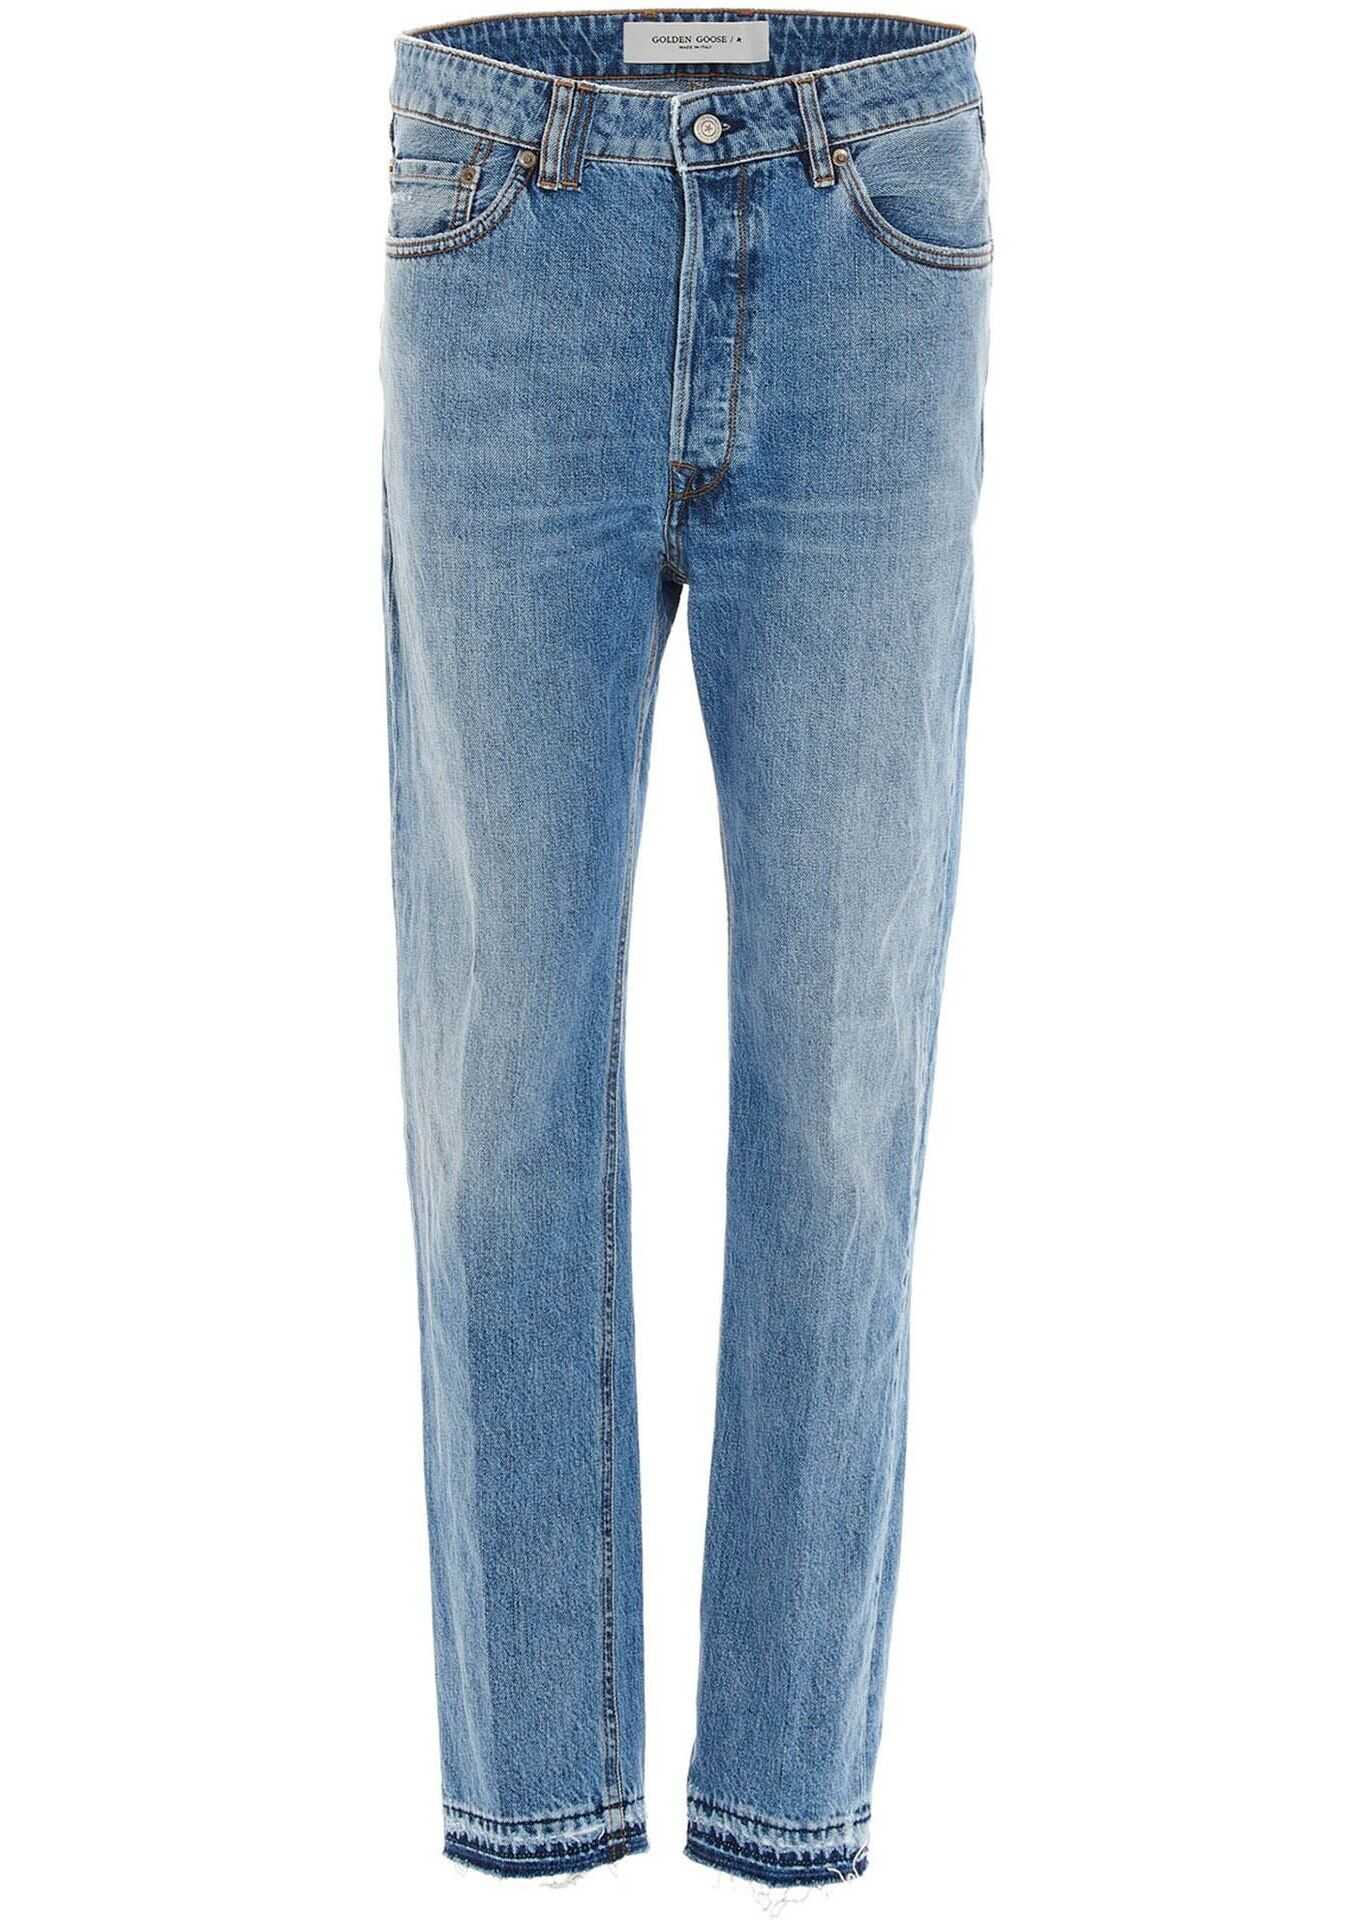 Golden Goose Jeans With Fringed Hem In Blue Blue imagine